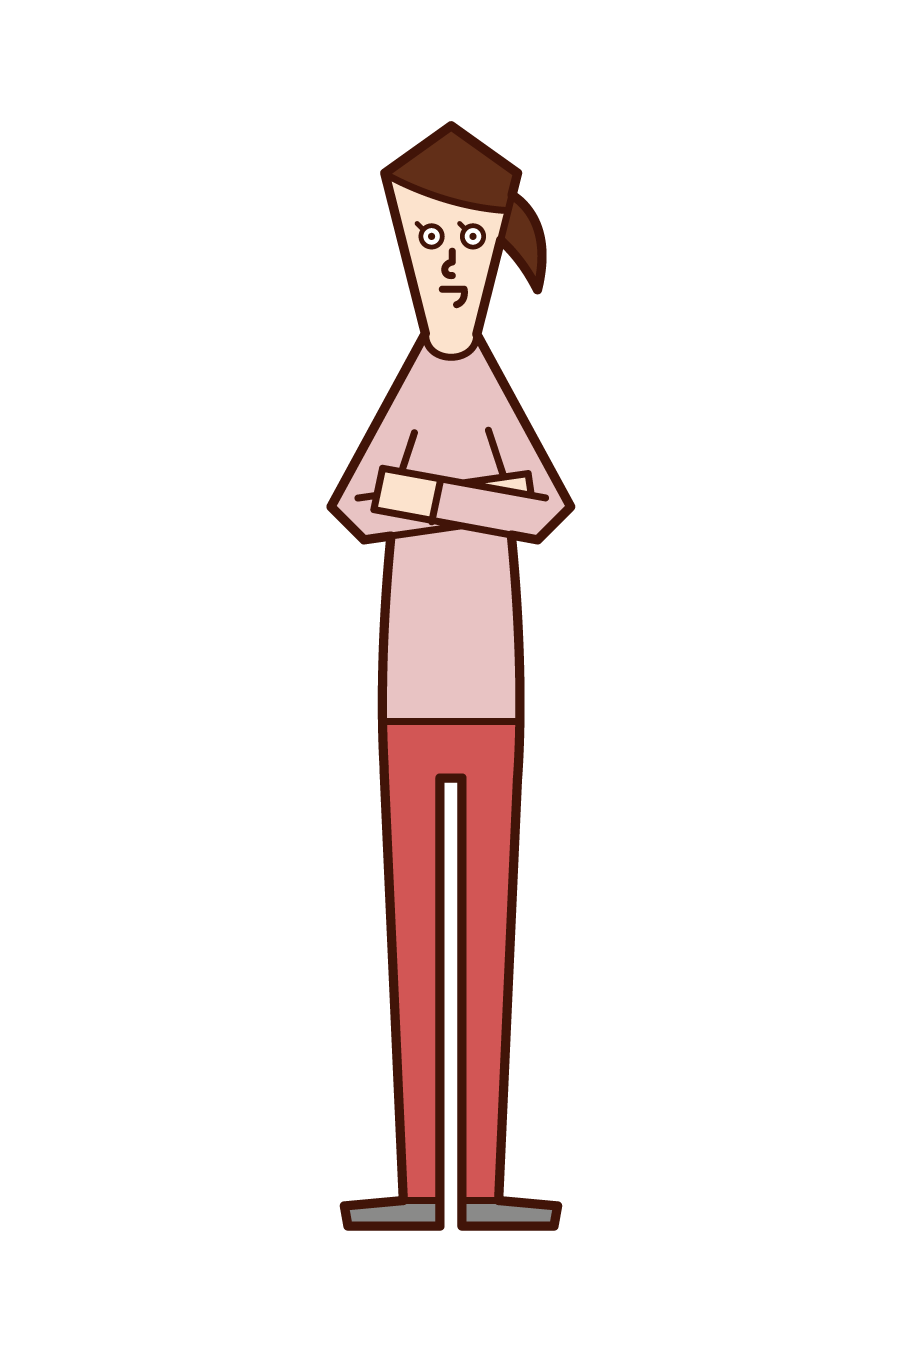 Illustration of a person (woman) with arms folded